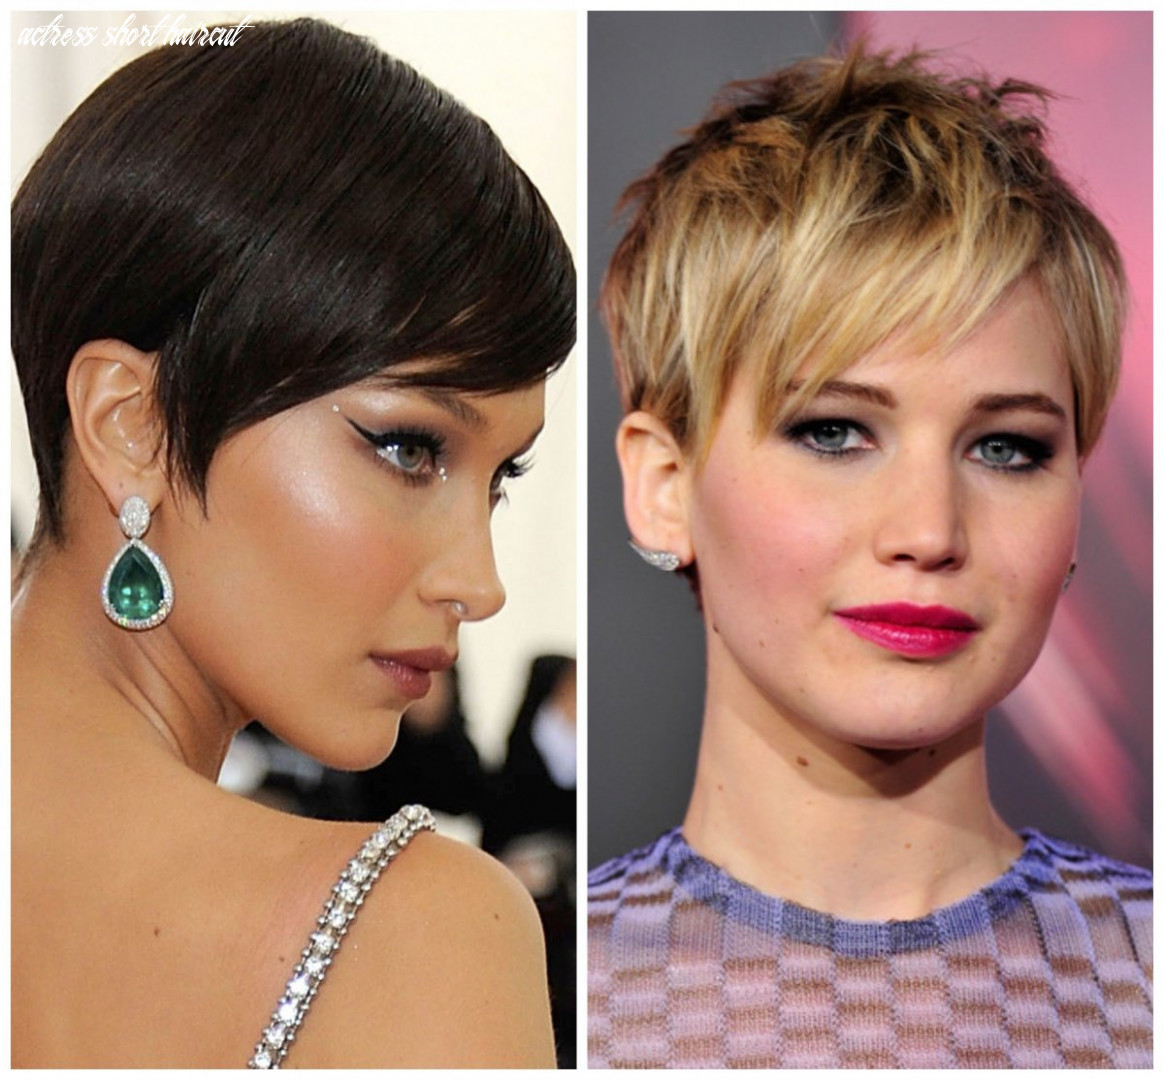 8 Amazing Pixie Haircuts Celebs Wore If You Are Looking For ...